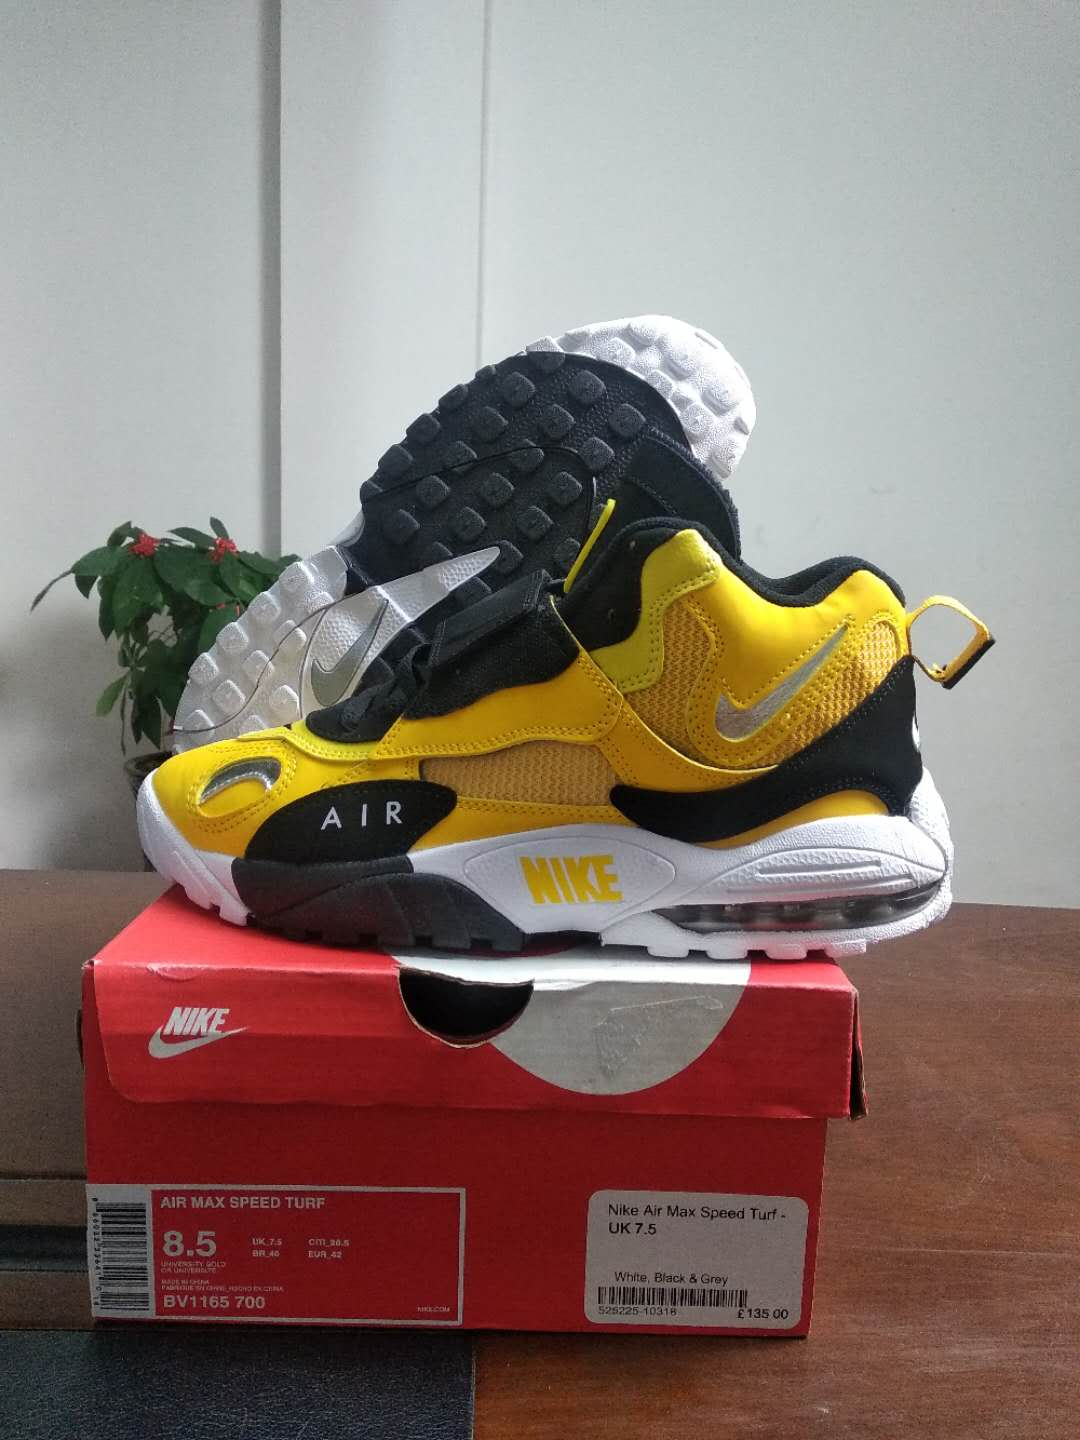 2019 New Nike Air Max Speed Truf Yellow Black White